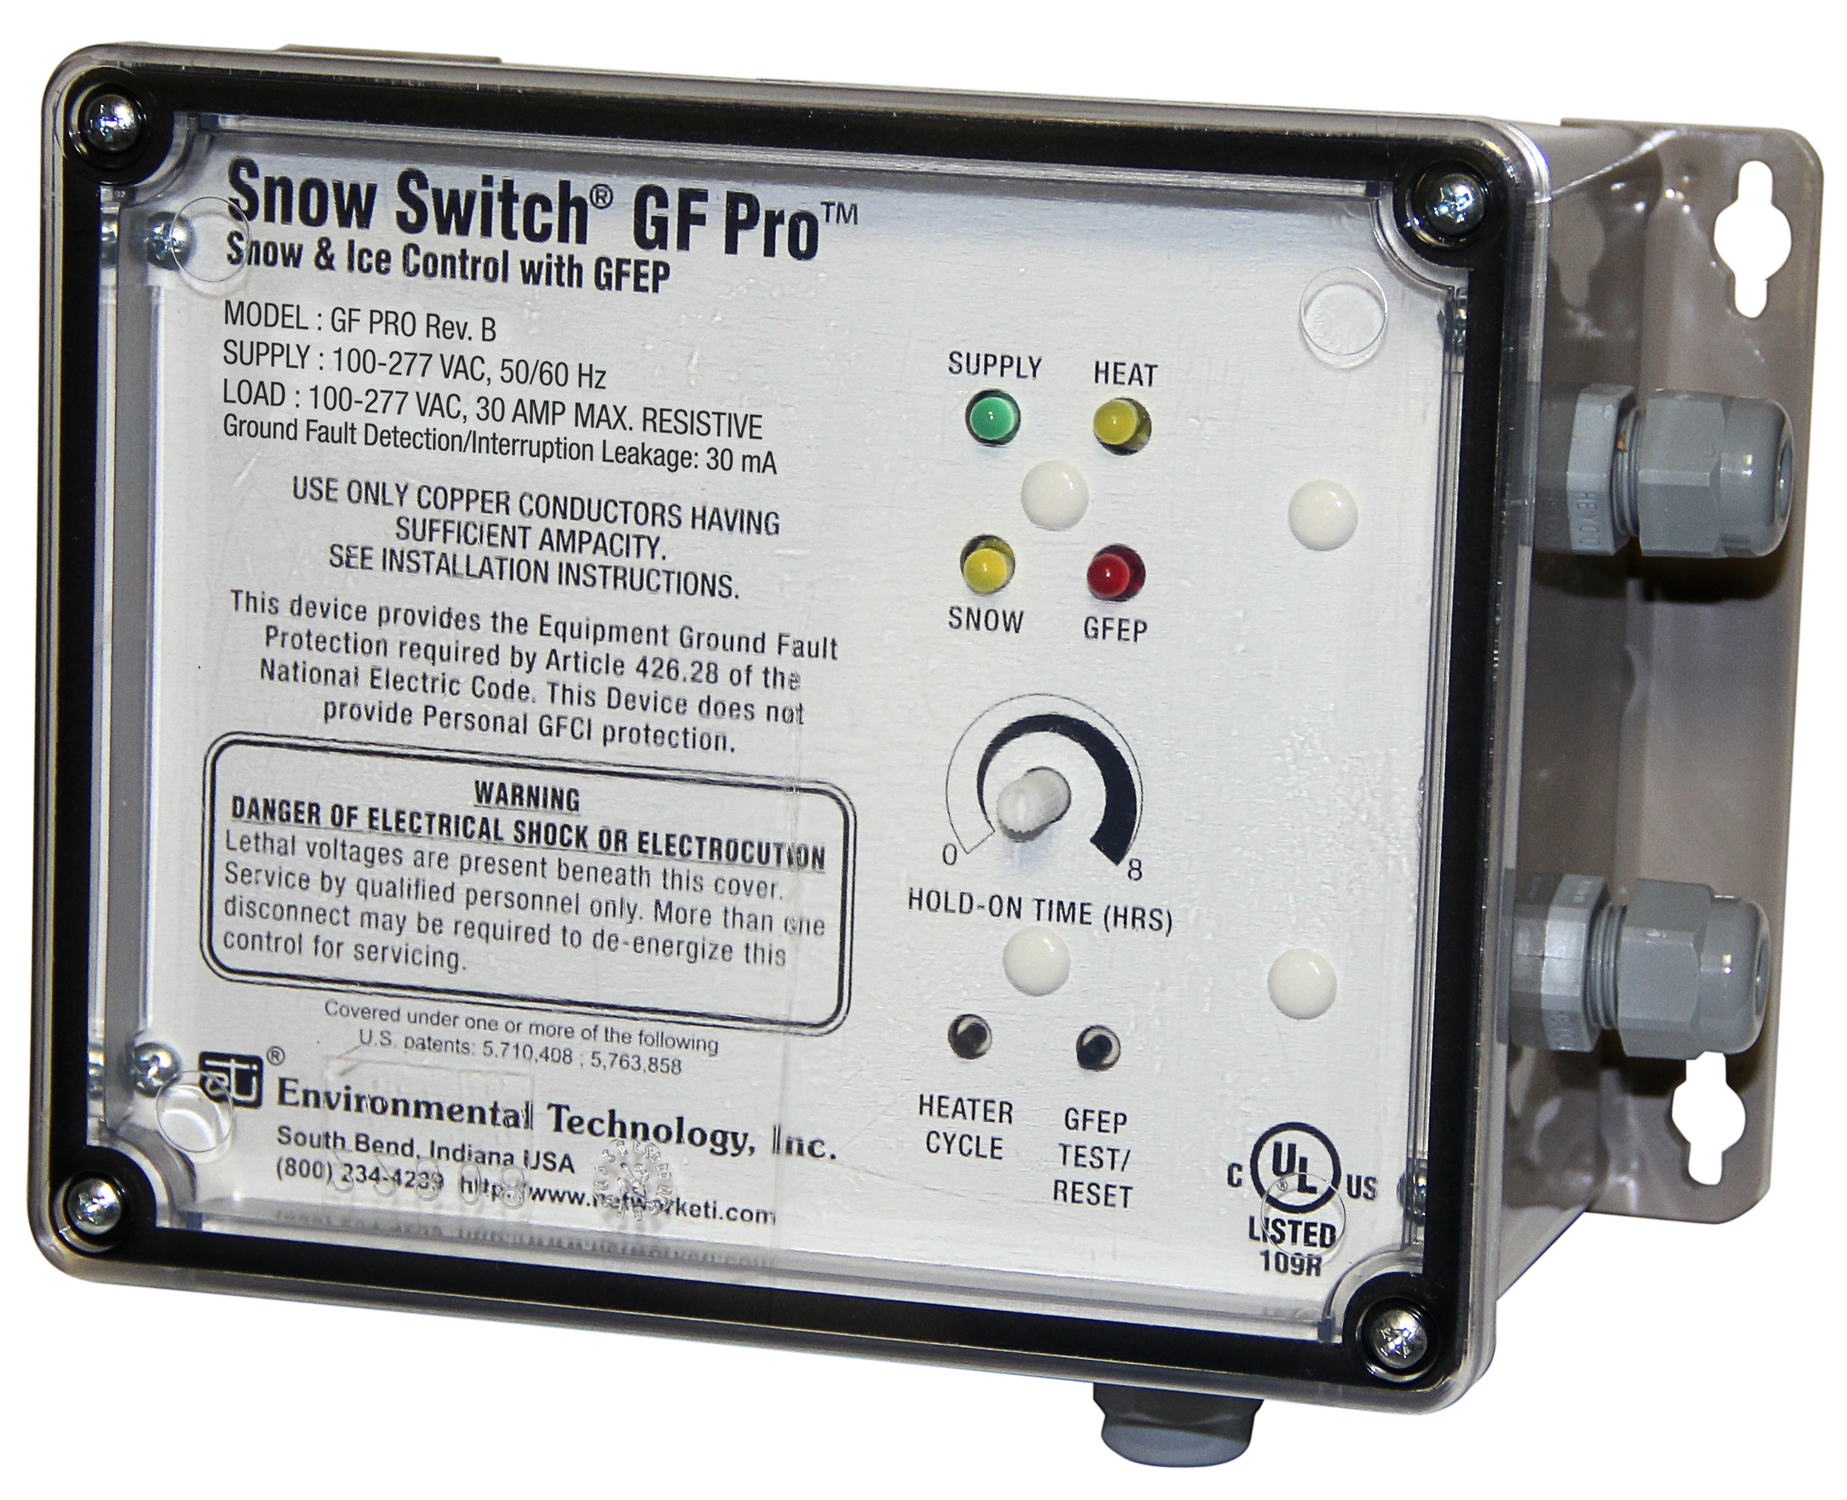 The Snow Switch® Model GF Pro uses separate snow and ice sensors to regulate roof heater systems.